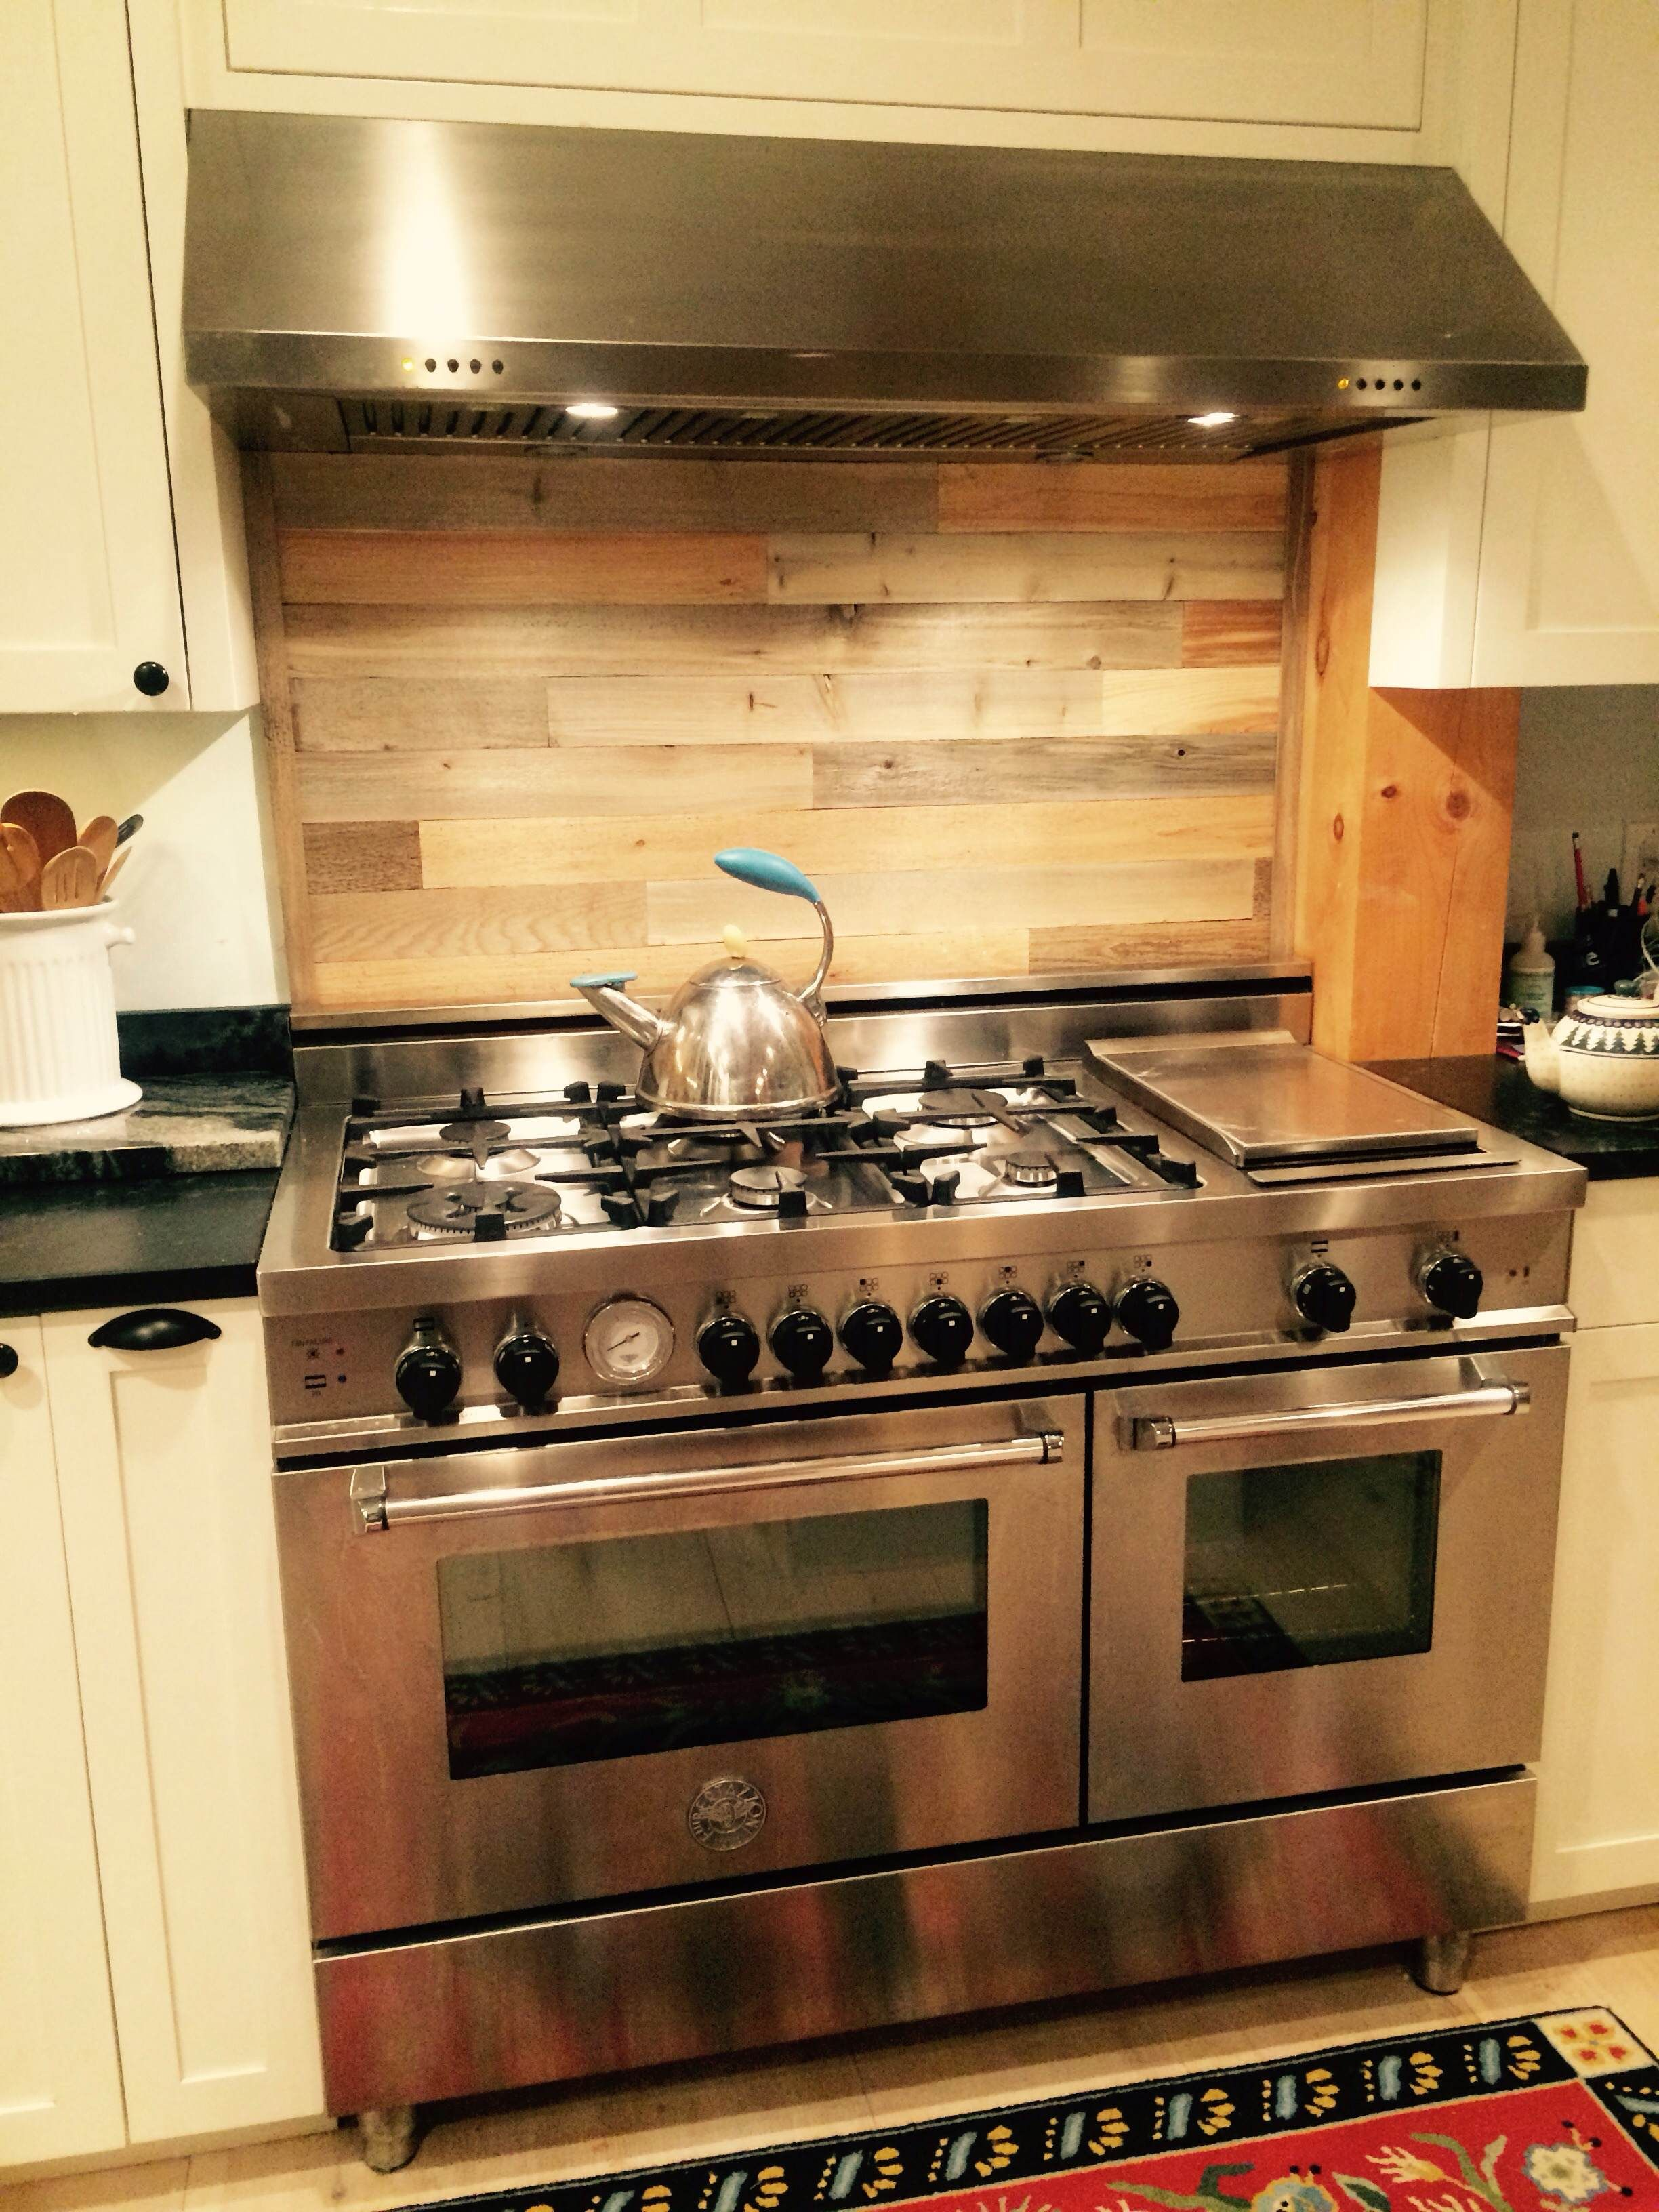 Timberchic Sticks To The Old Tile Backsplash Behind This Stove